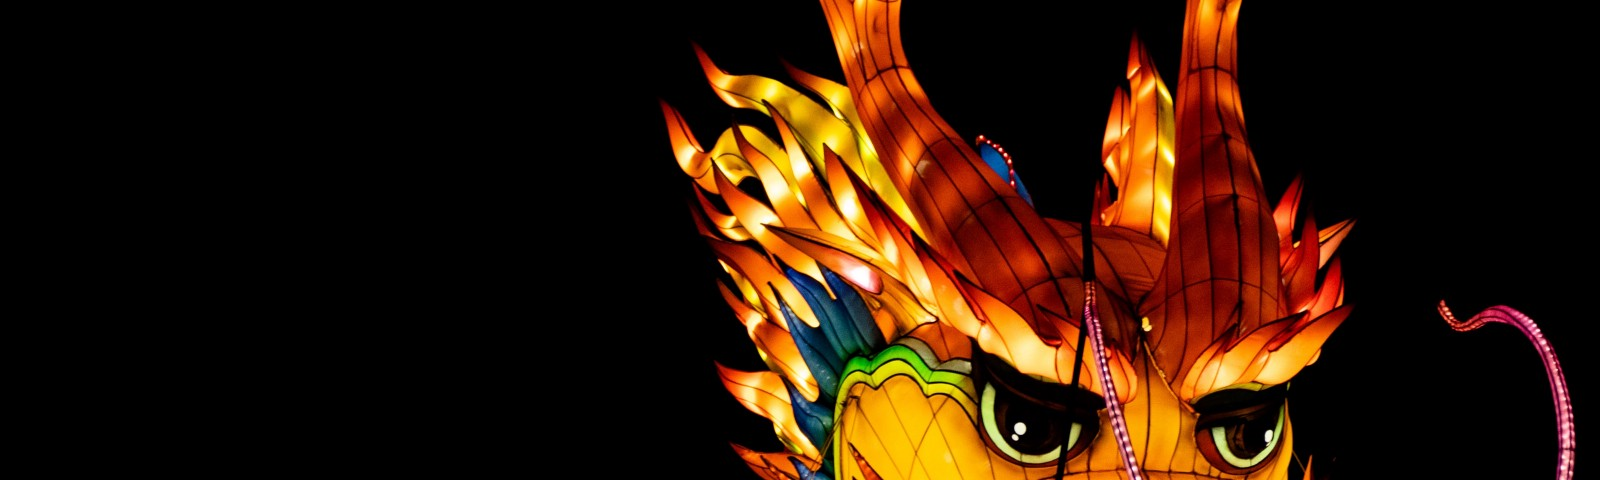 paper dragon all lit up in a night dragon festival parade